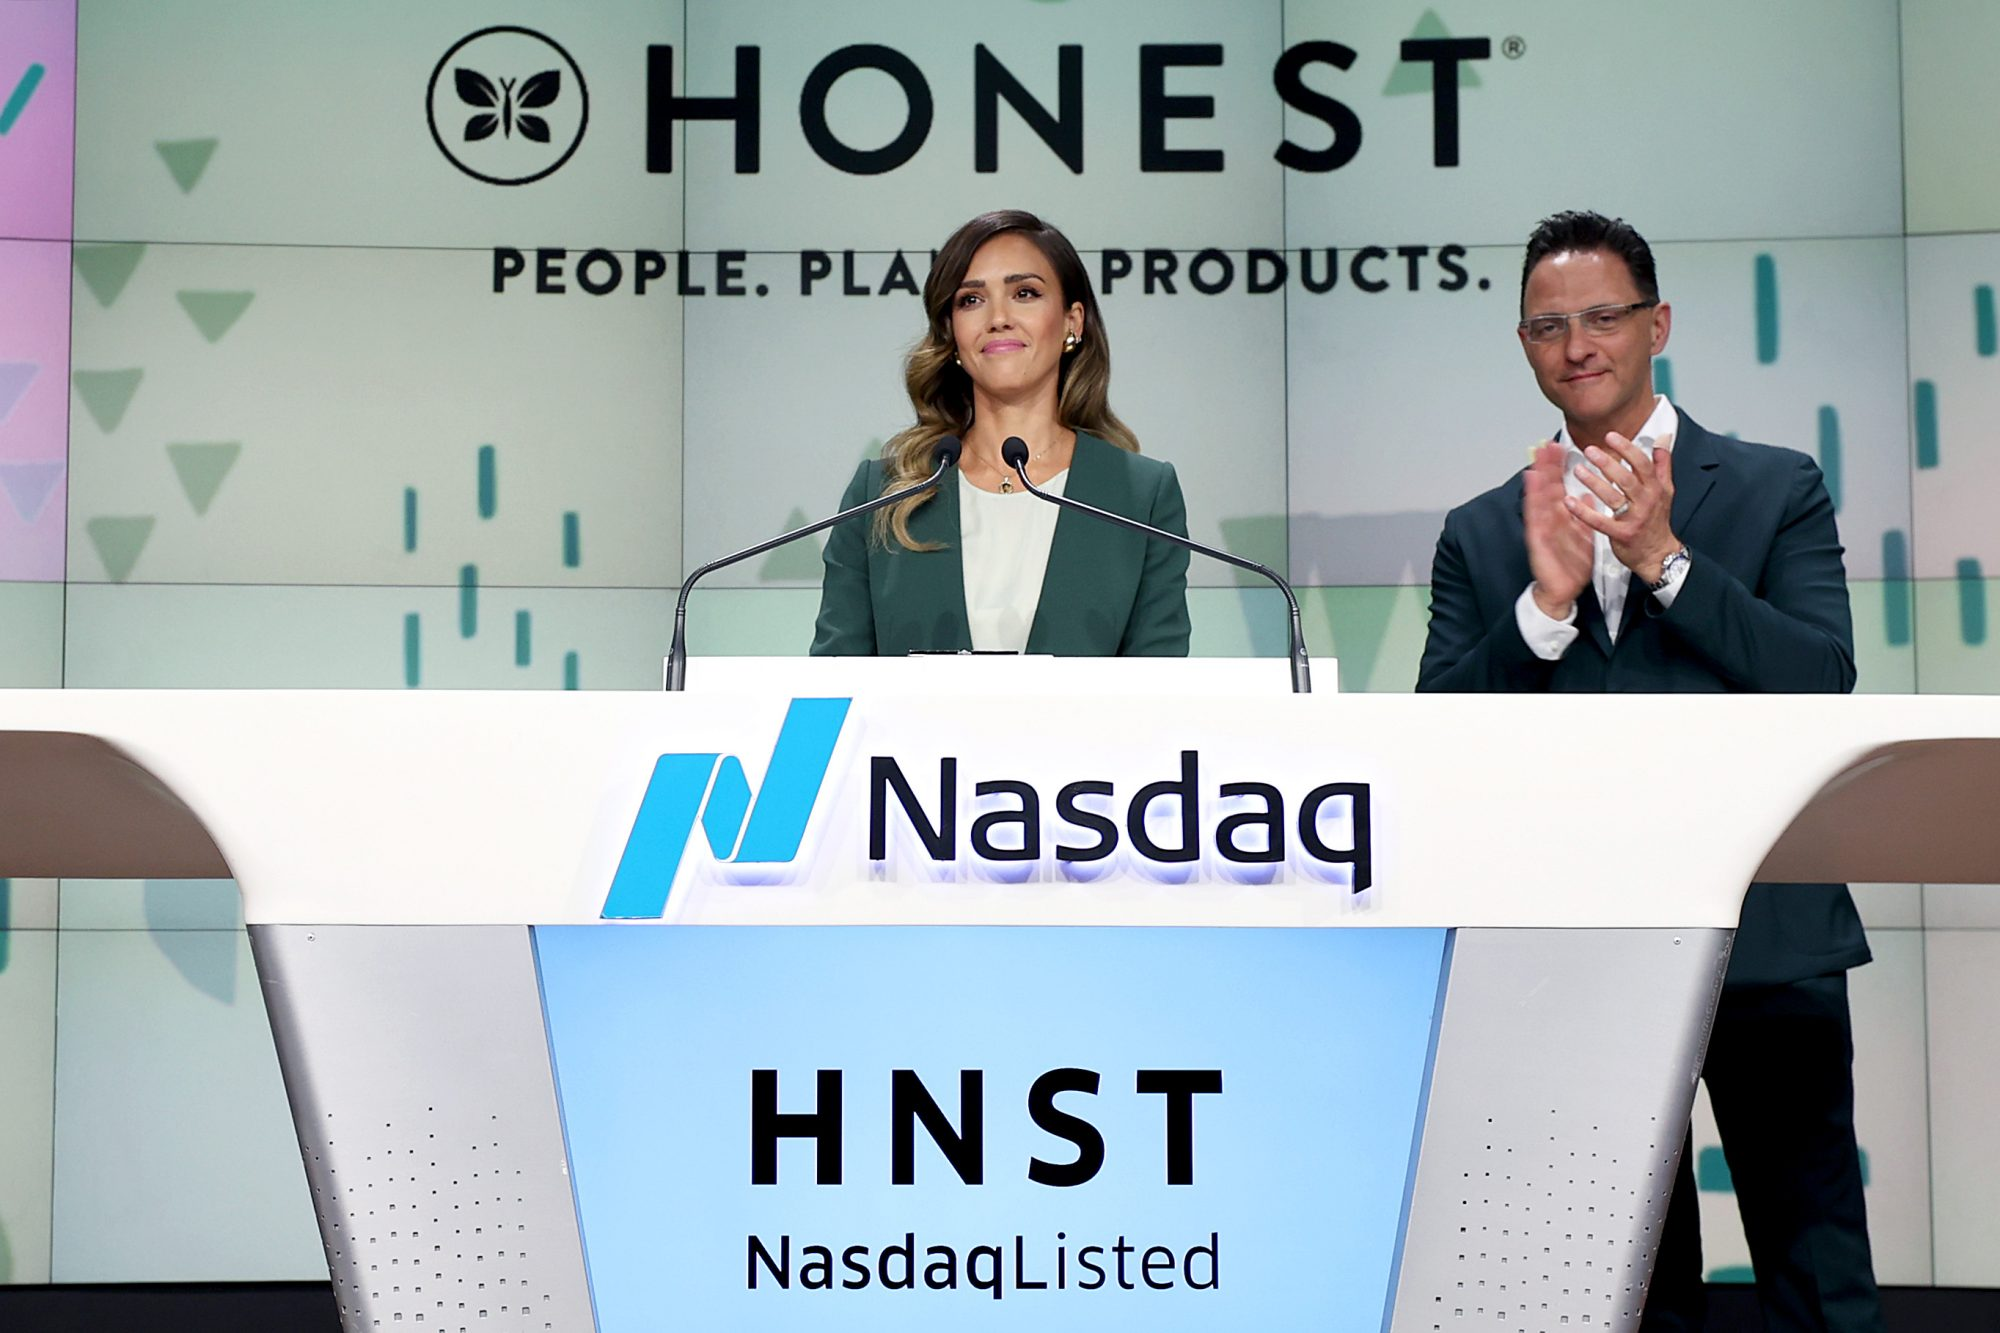 The Honest Company founder and chief creative officer Jessica Alba and The Honest Company CEO Nick Vlahos ring the Nasdaq Stock Market opening bell to mark the company's IPO at NASDAQ MarketSite